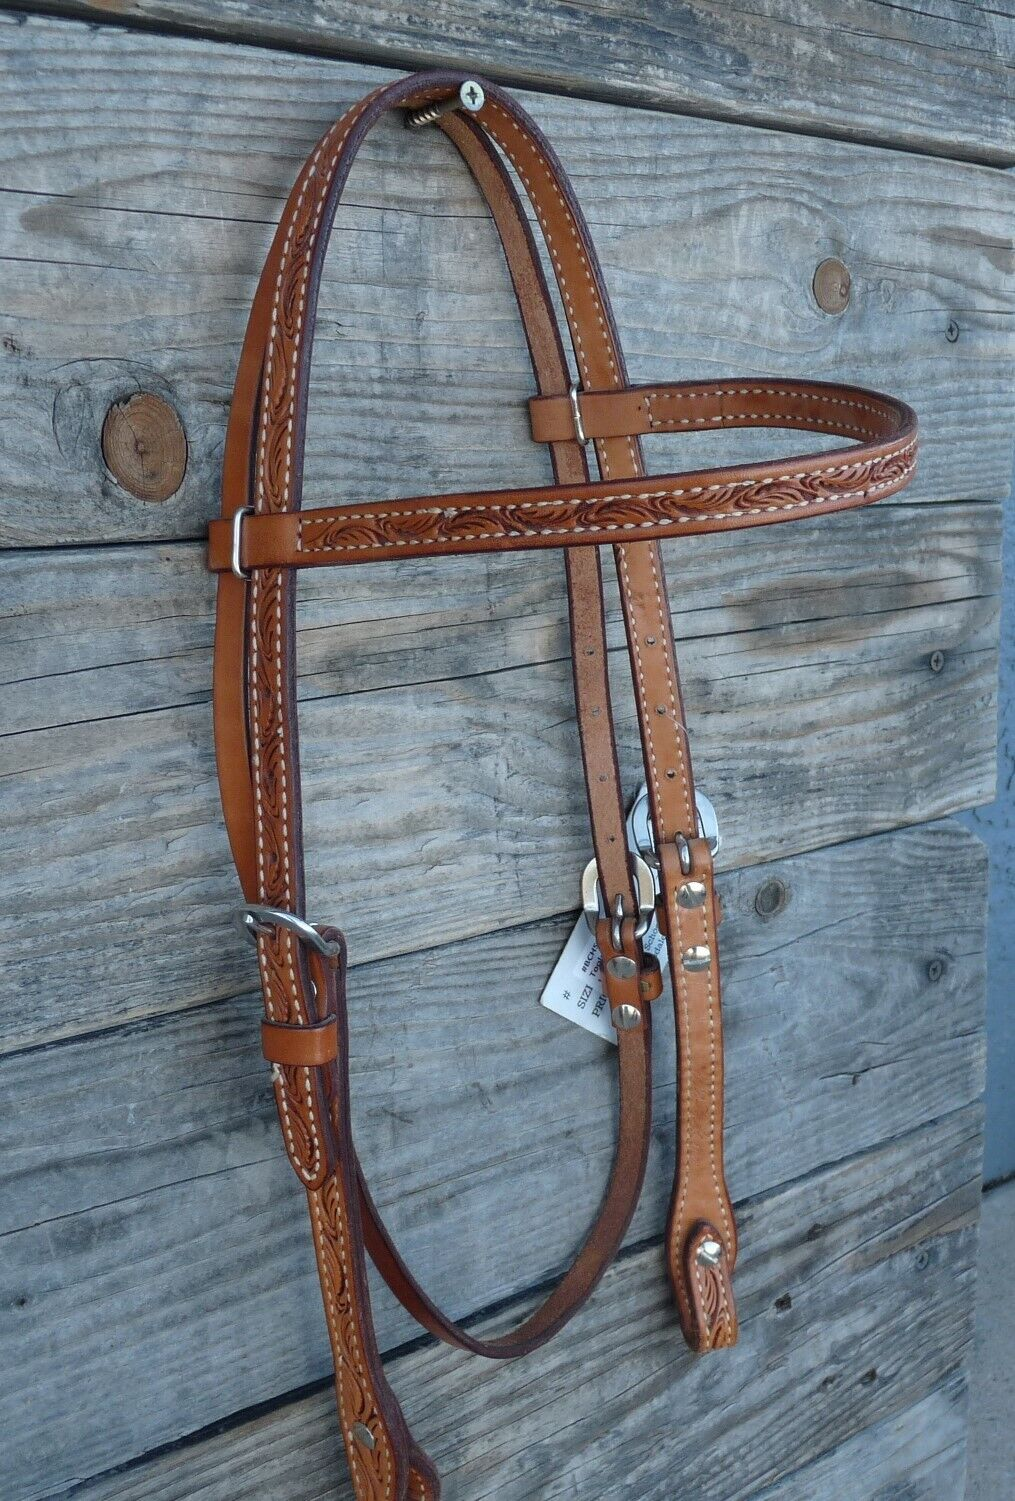 Billy Cook Rawhide Laced Basket Stamped Headstall Leather Horse Tack Water Ties